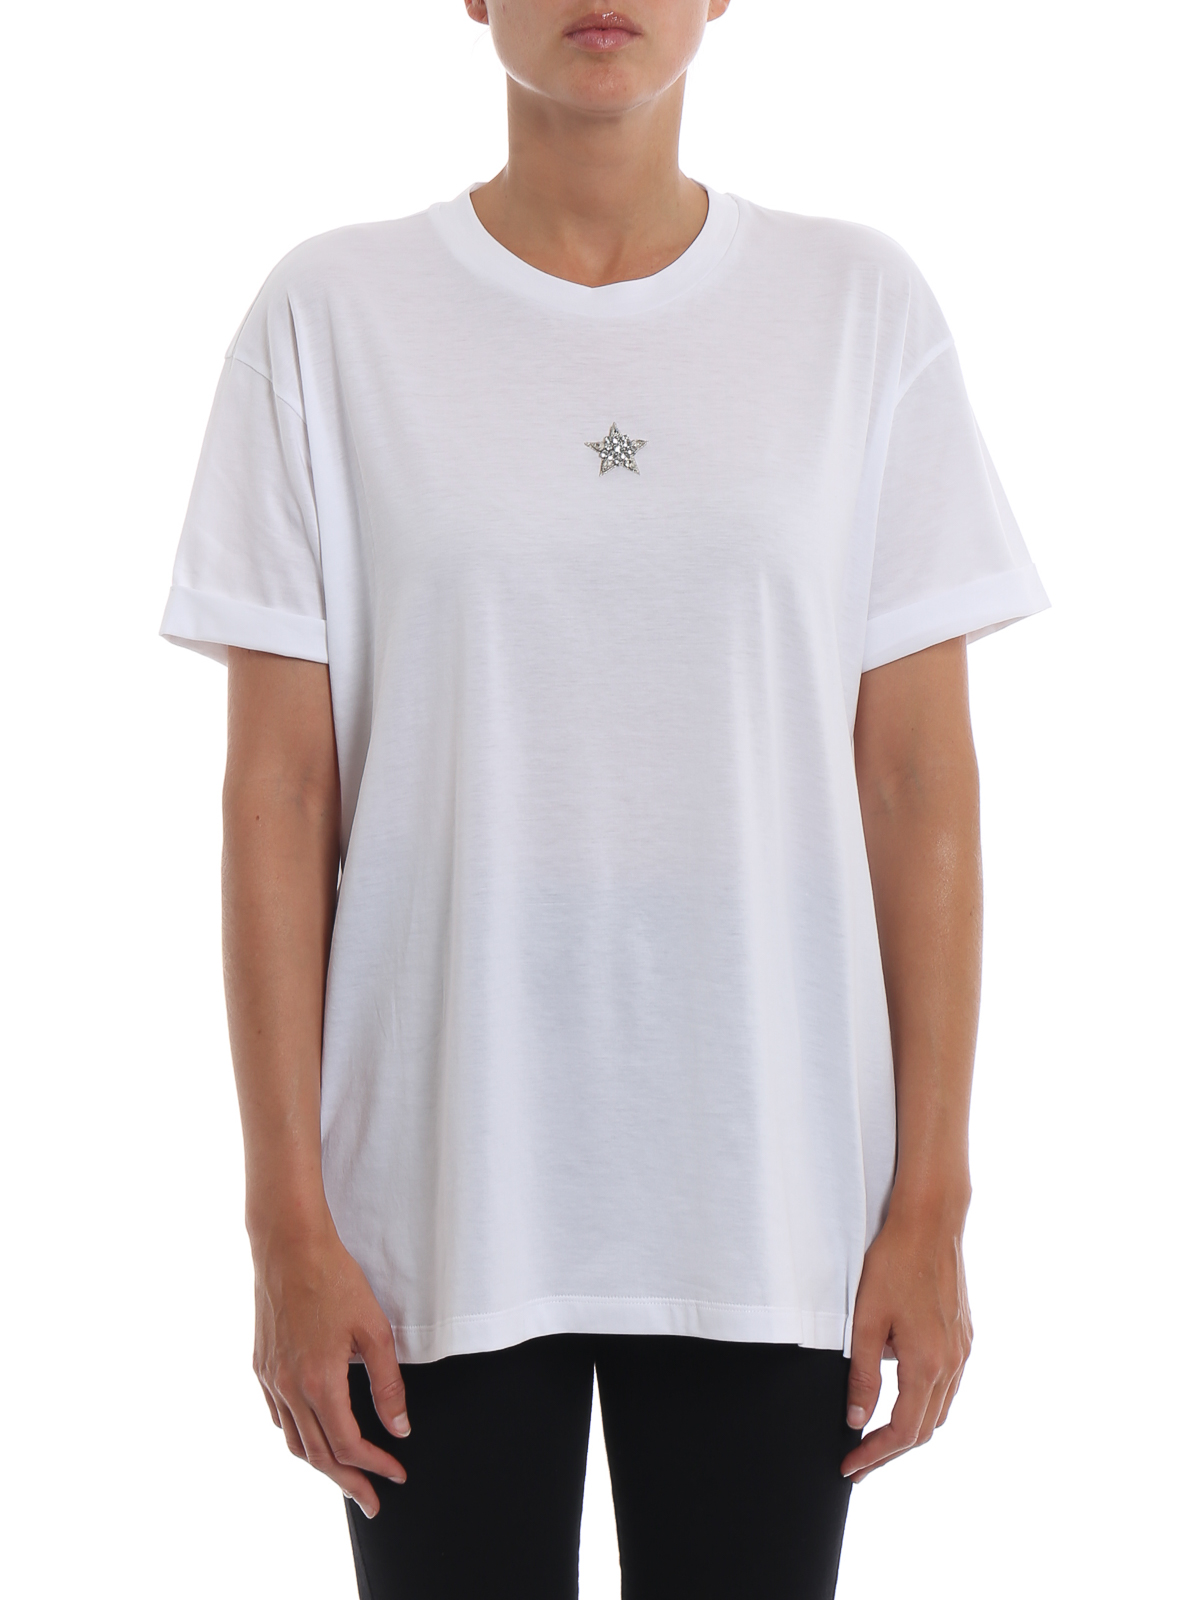 9f8f44c8 iKRIX STELLA McCARTNEY: t-shirts - Crystal star white T-shirt